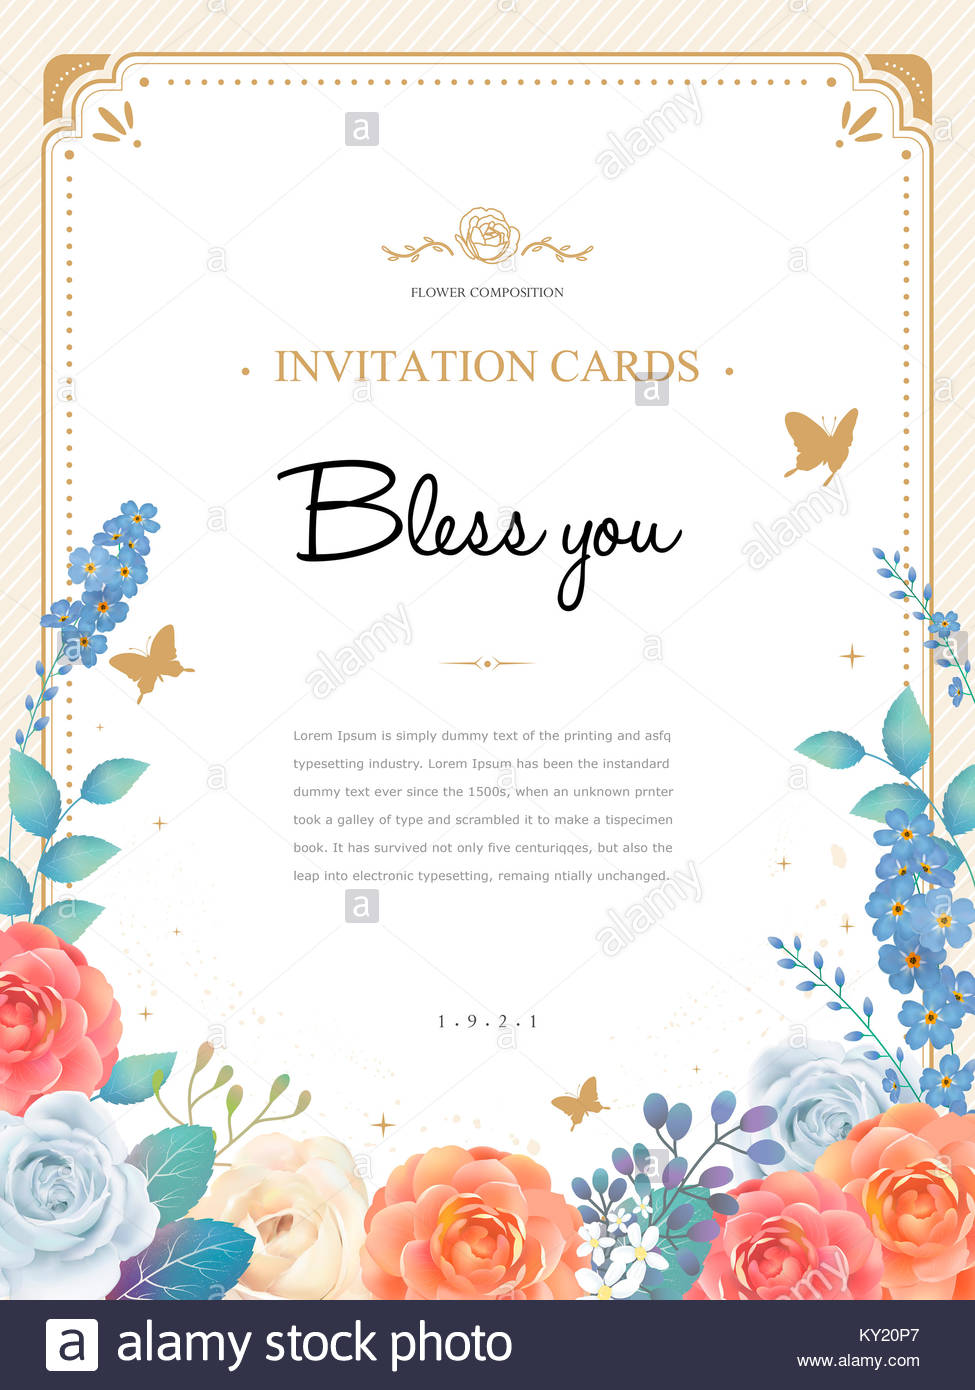 Romantic roses invitation template design in watercolor style stock romantic roses invitation template design in watercolor style stopboris Image collections